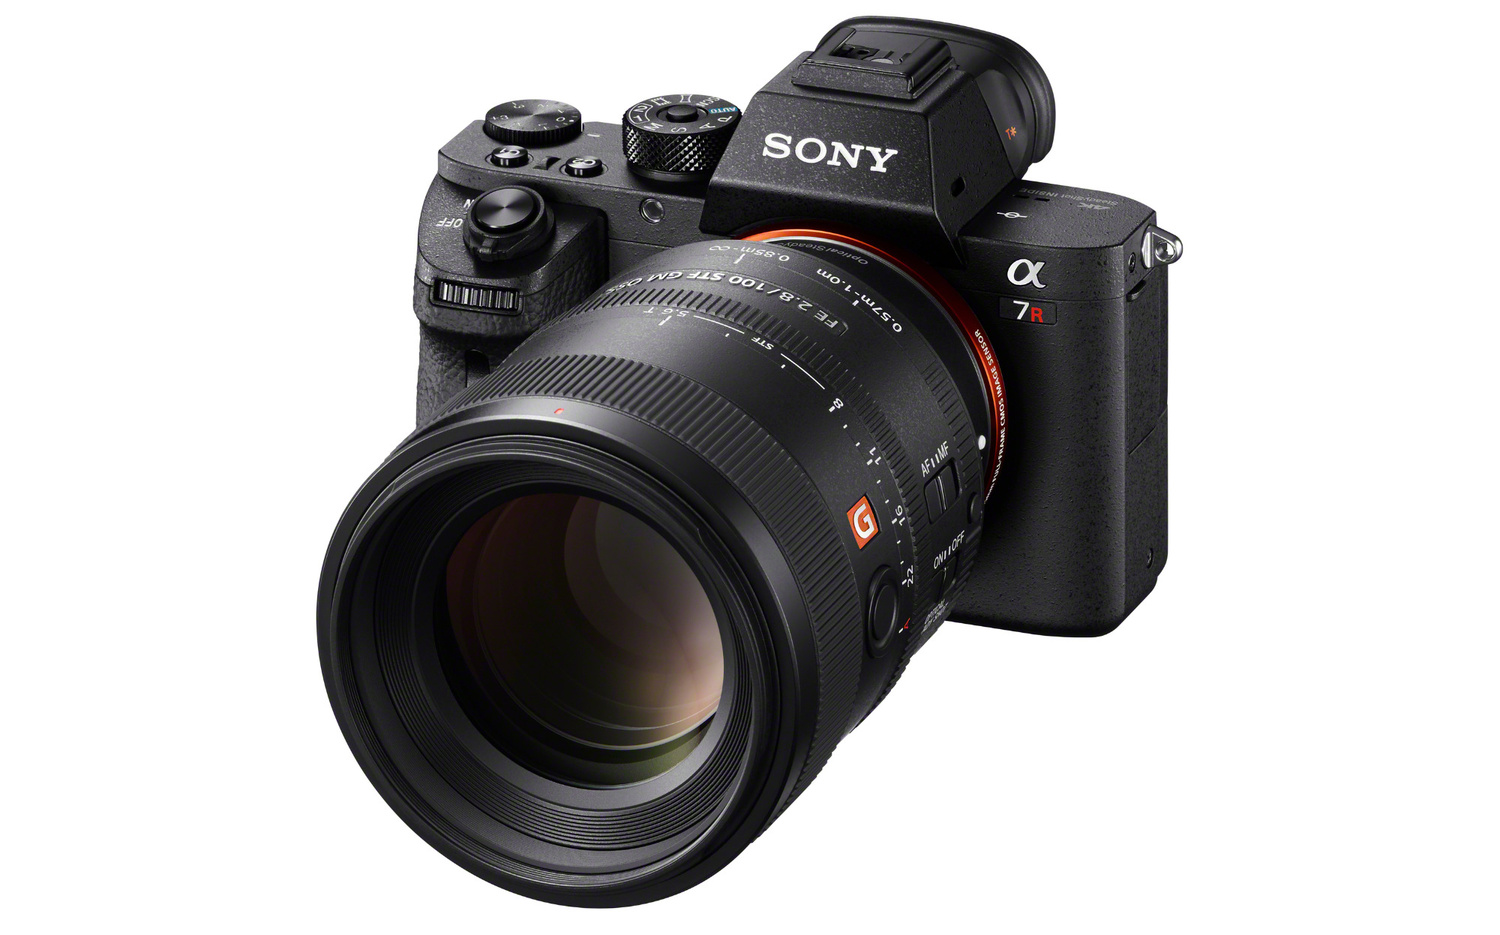 Sony FE 100 mm F2.8 STF GM OSS